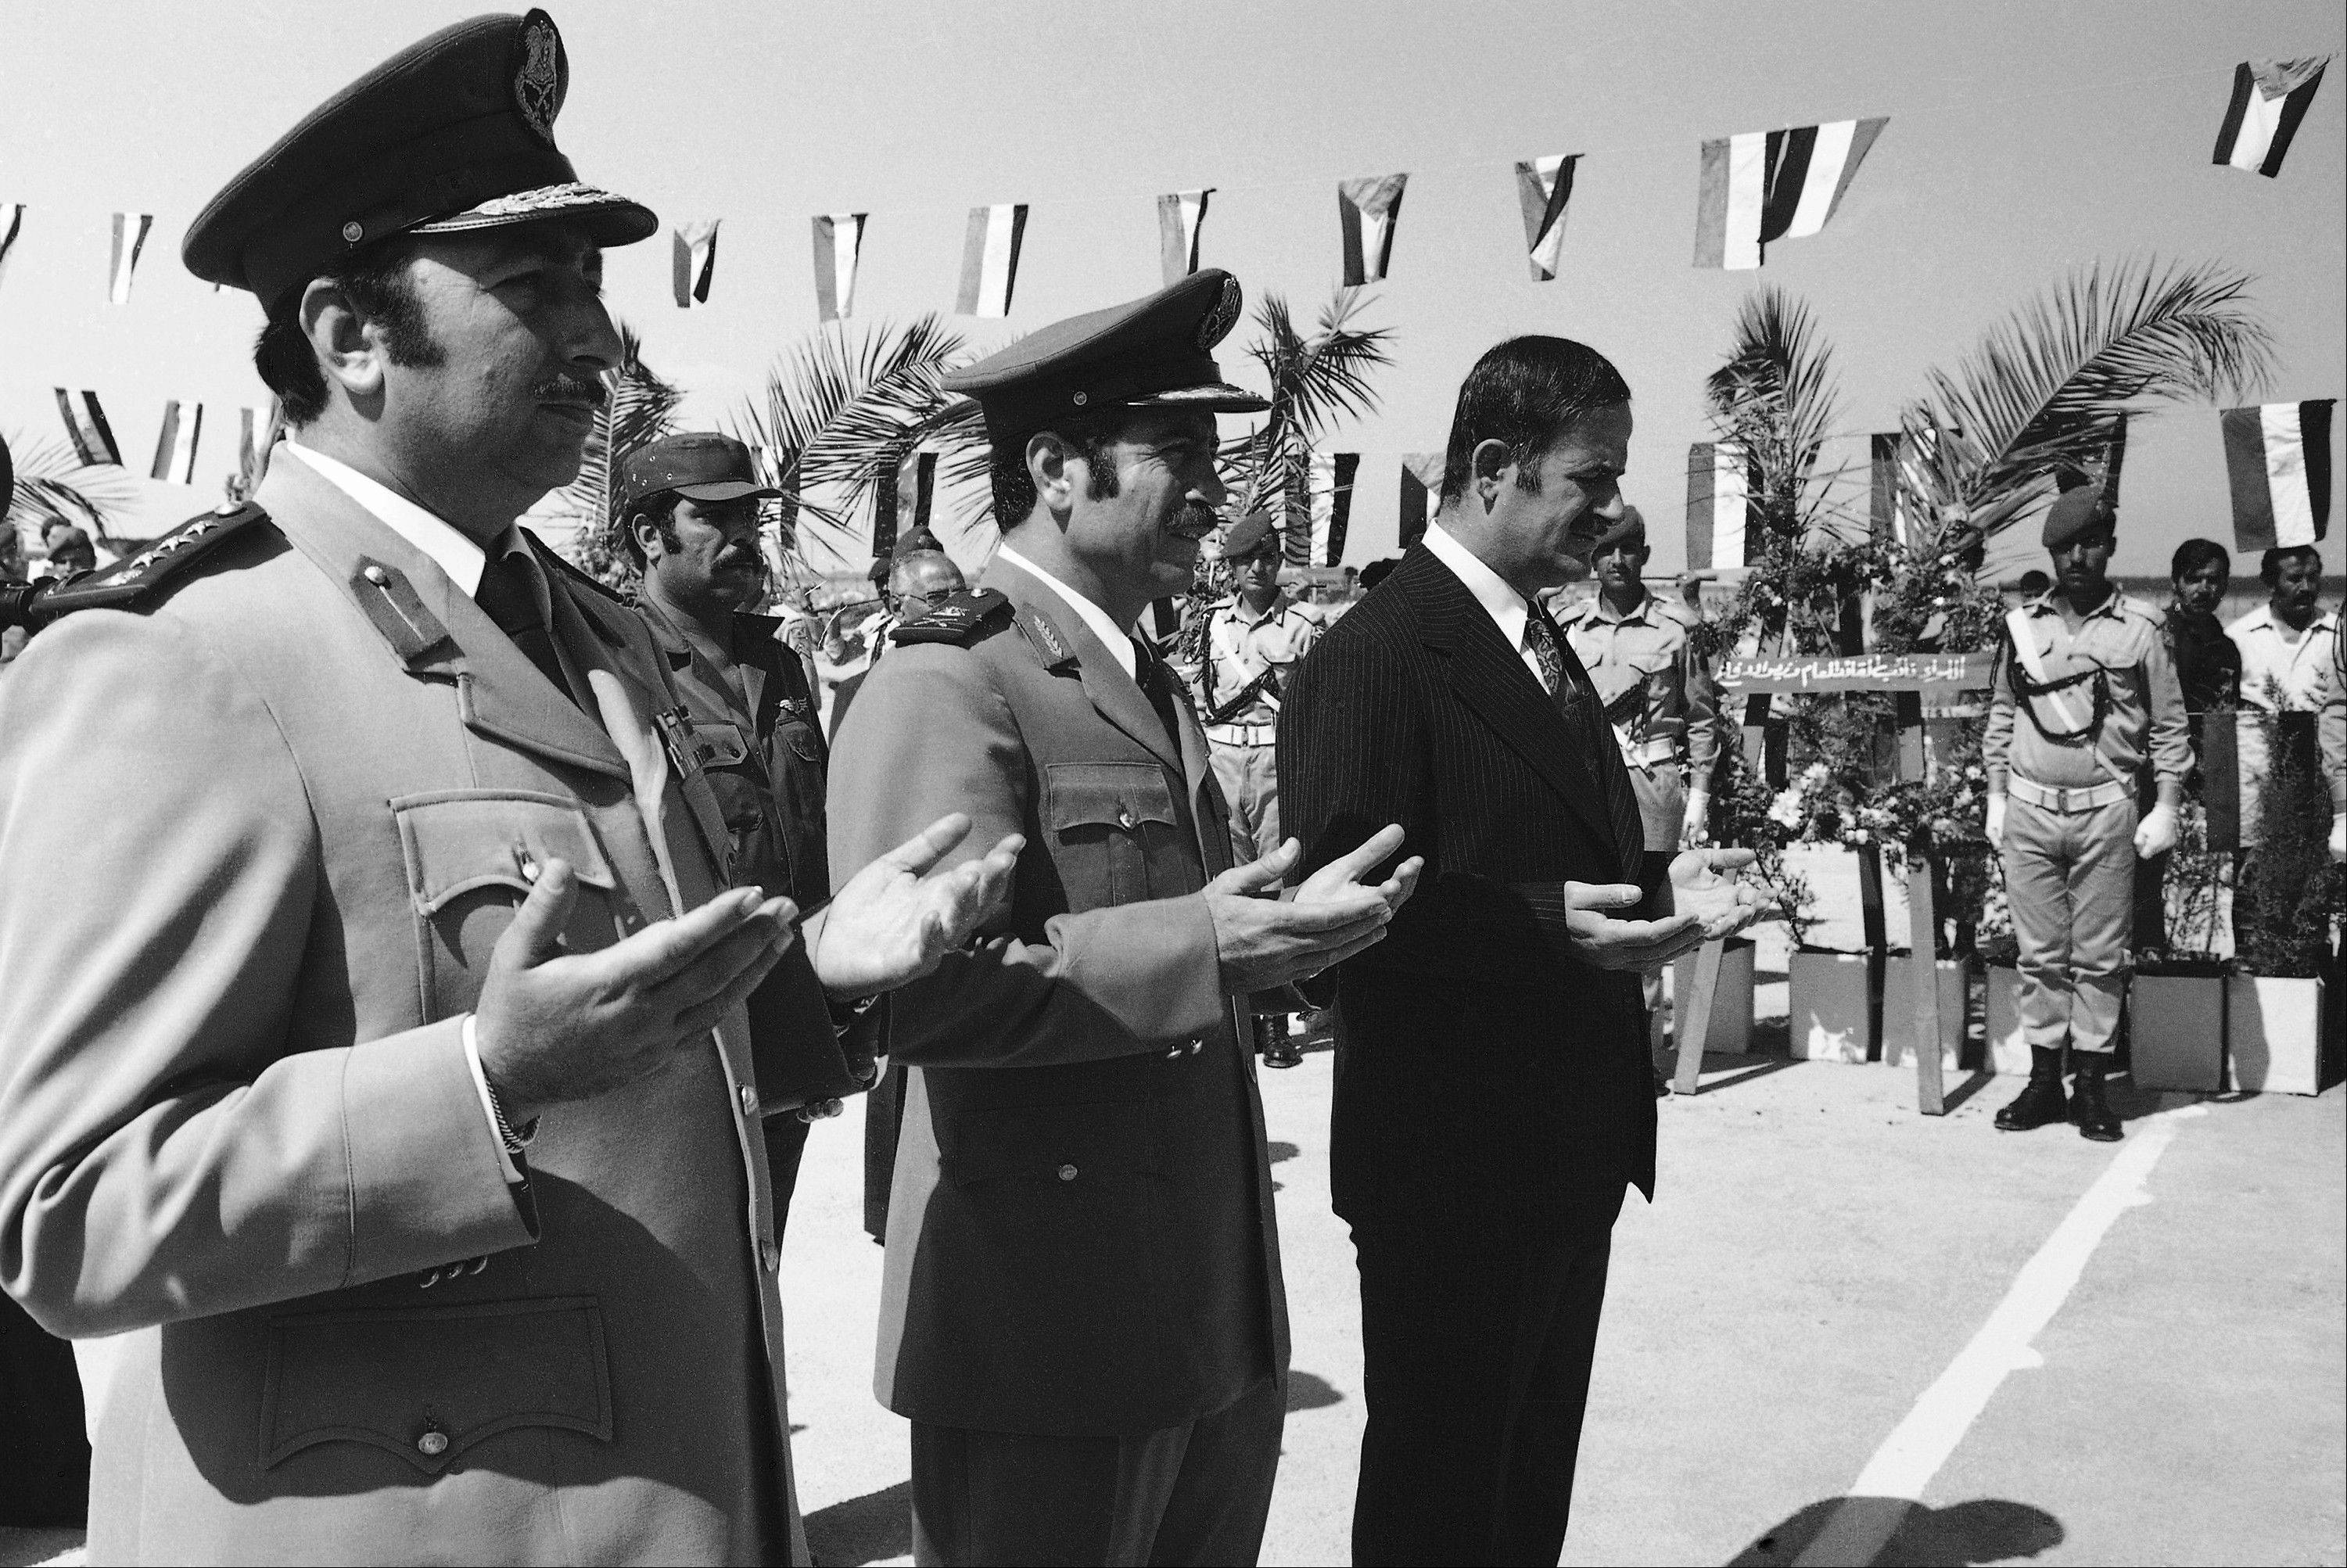 Associated Press/Oct. 6, 1974 Syrian President Hafez Assad, right, and Gen. Mustafa Tlass, then-war minister, center, take part in ceremonies in Damascus honoring Syrian dead on the first anniversary of the last war with Israel.